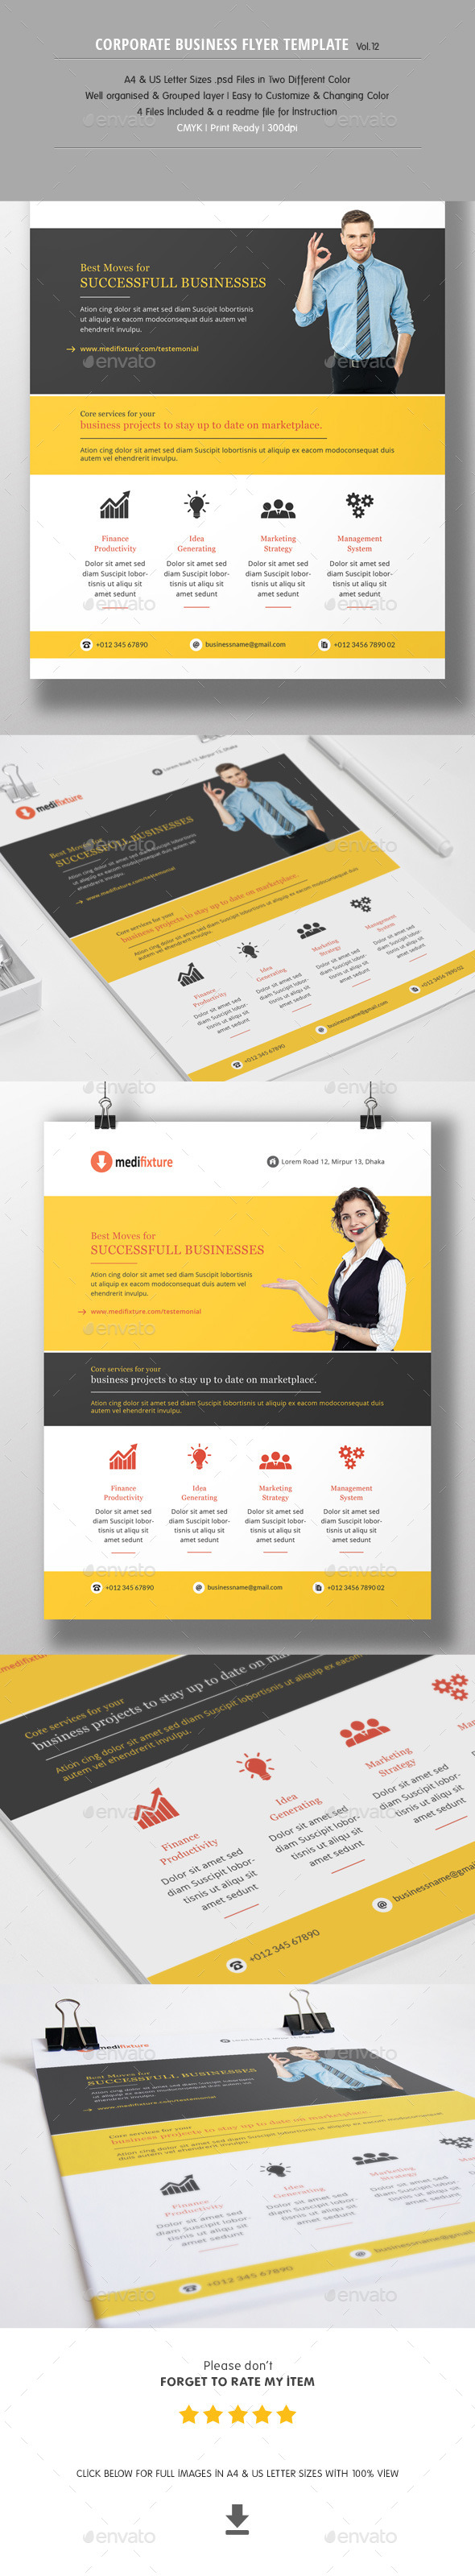 GraphicRiver Corporate Business Flyer Vol.12 10981629